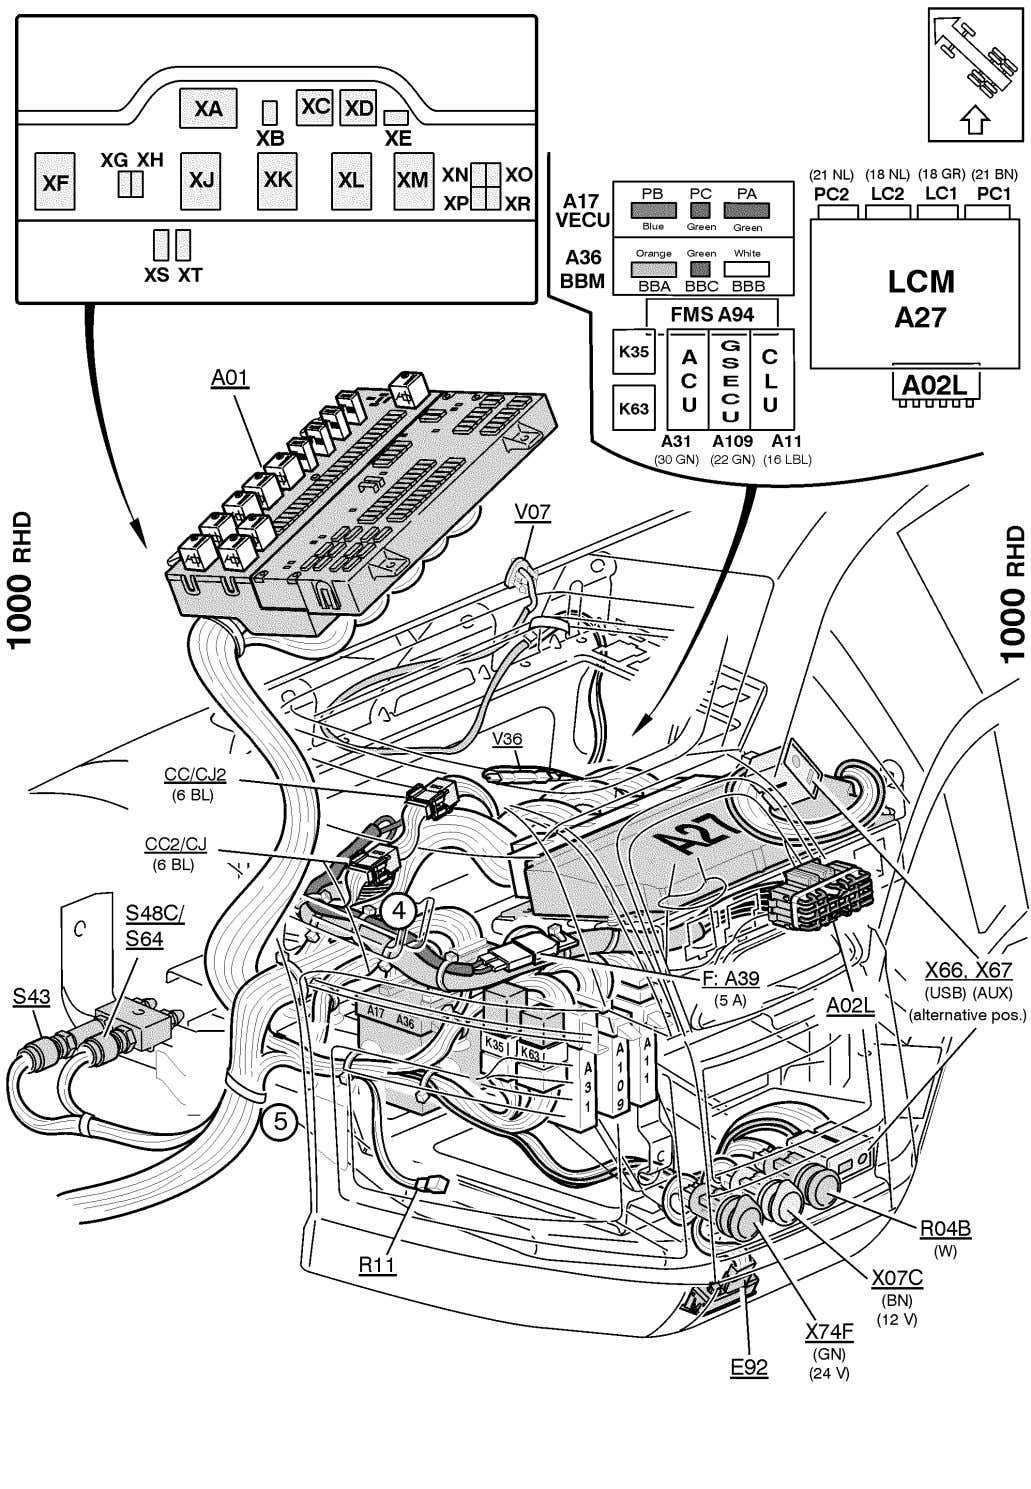 T3059939 Wiring diagram Page 141 (298)